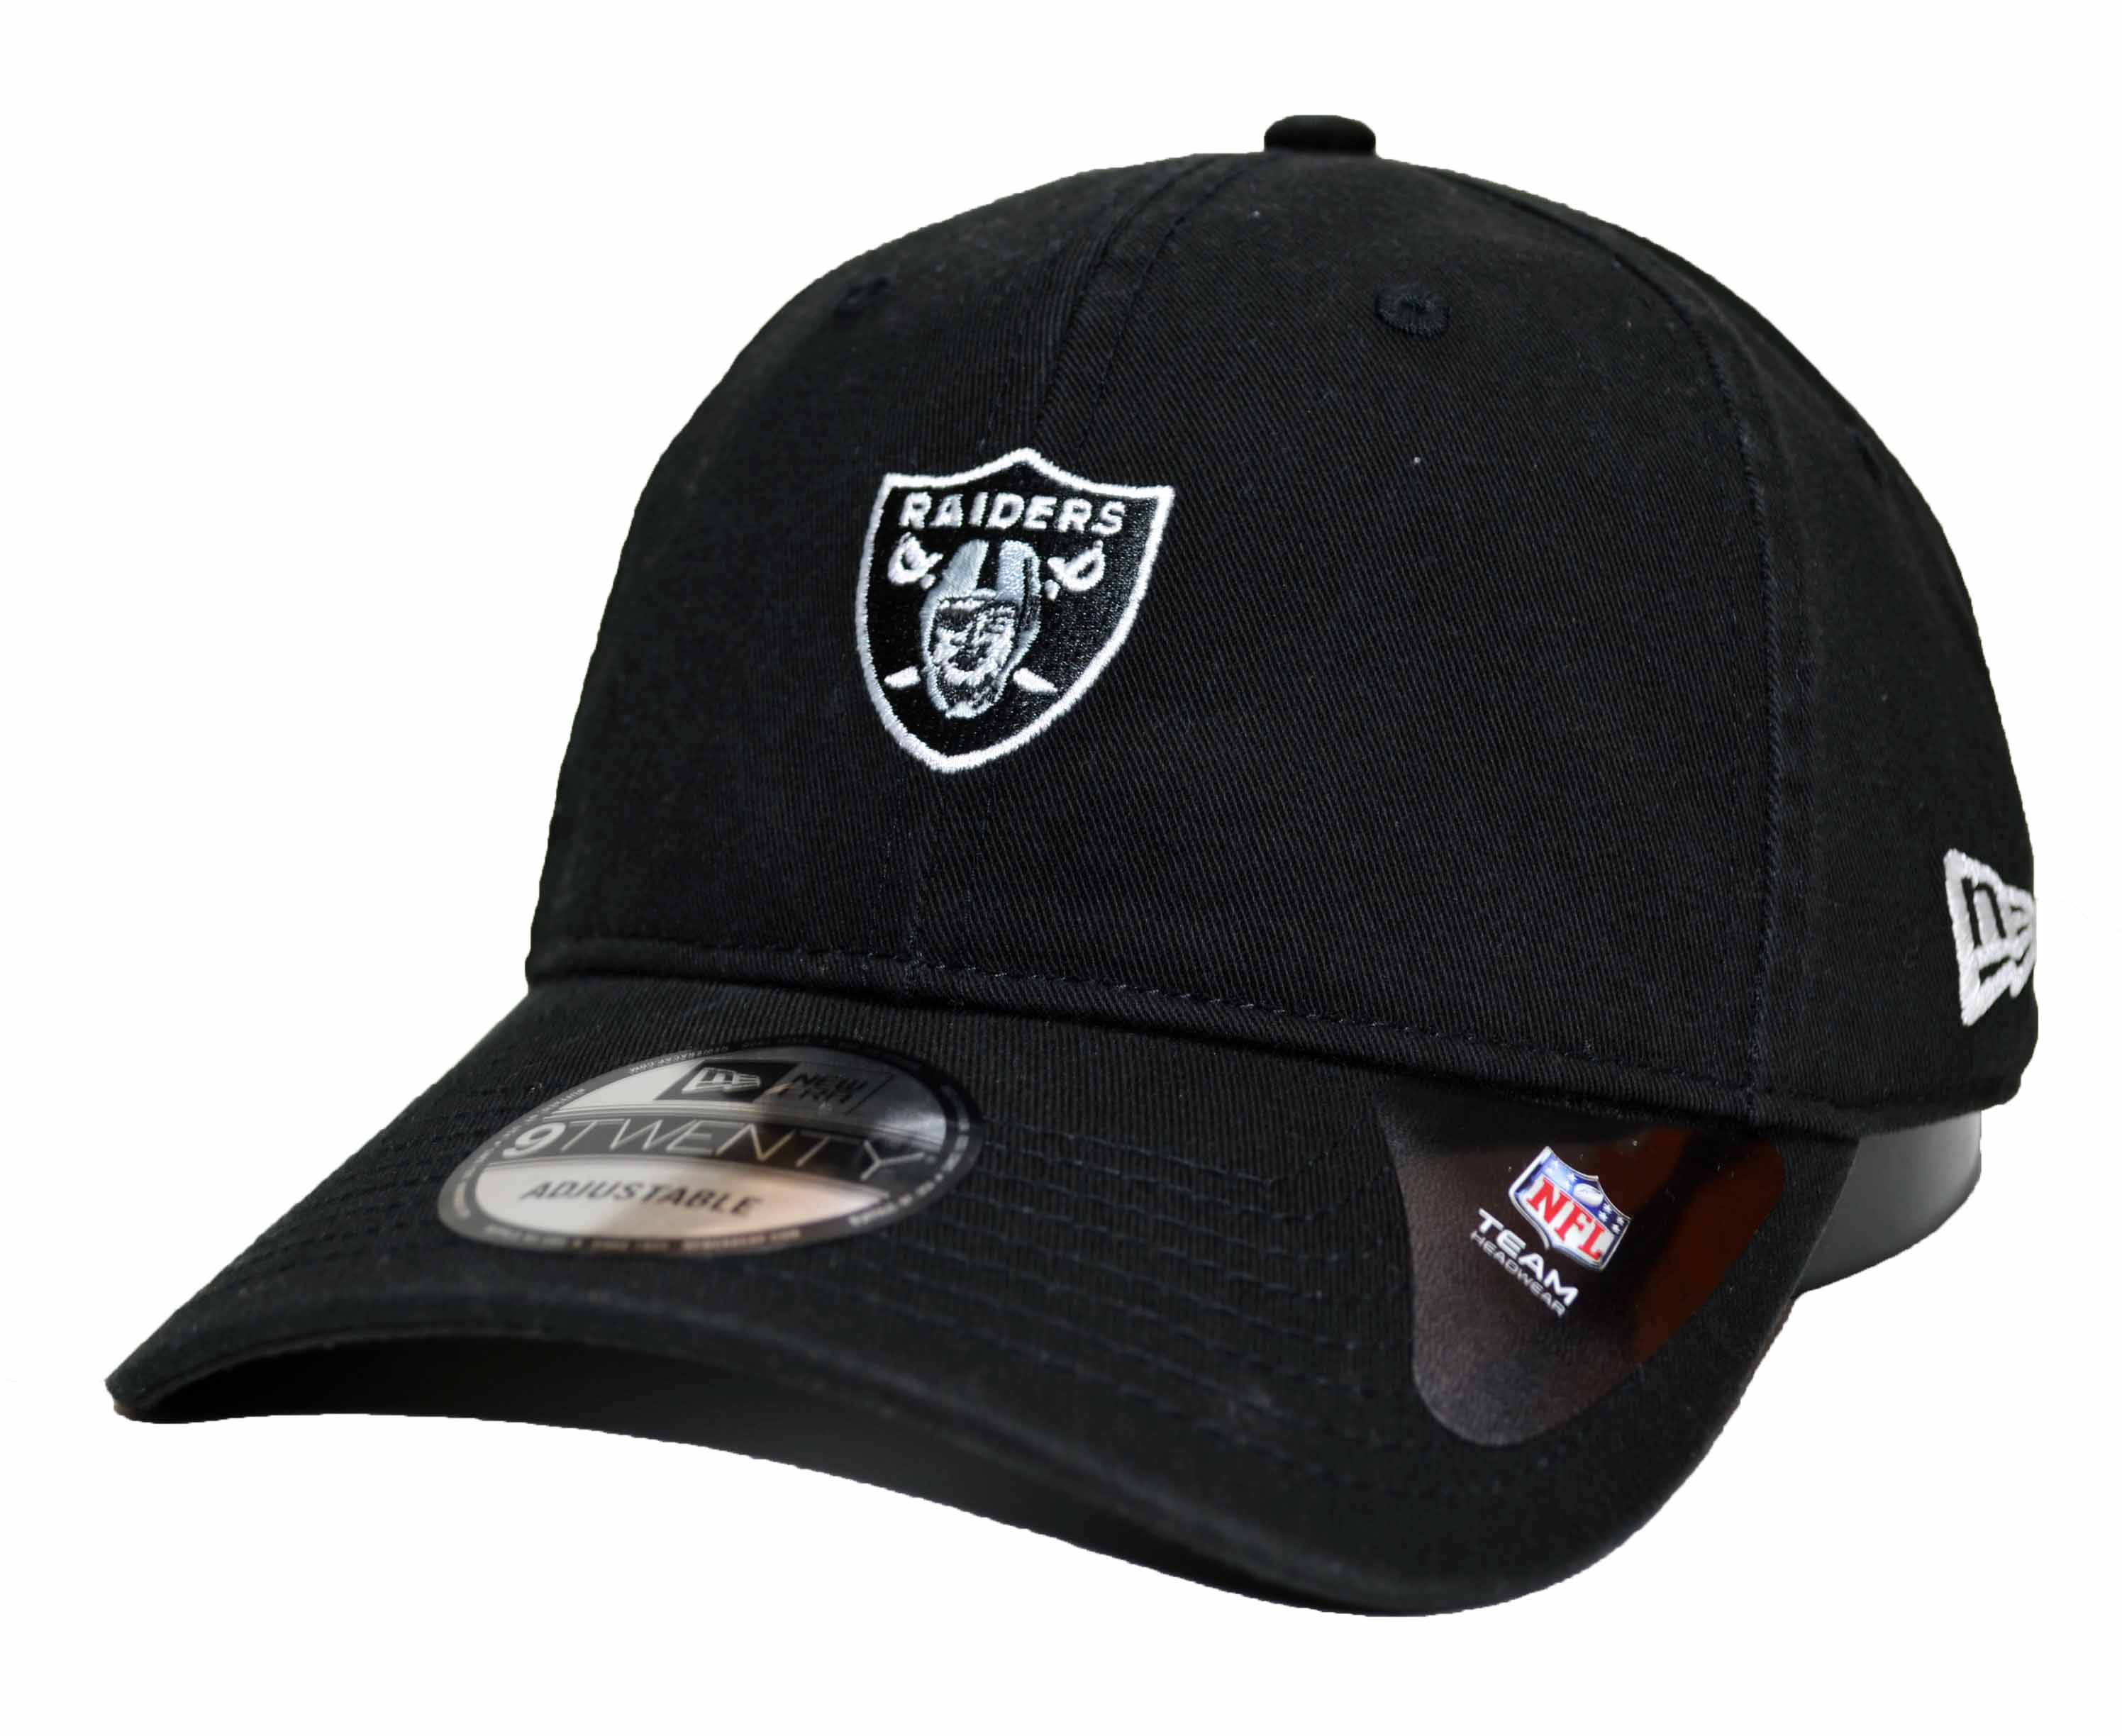 fa8dd6c6b95c9 Boné New Era Aba Curva Mini Logo Raiders Black - Strapback